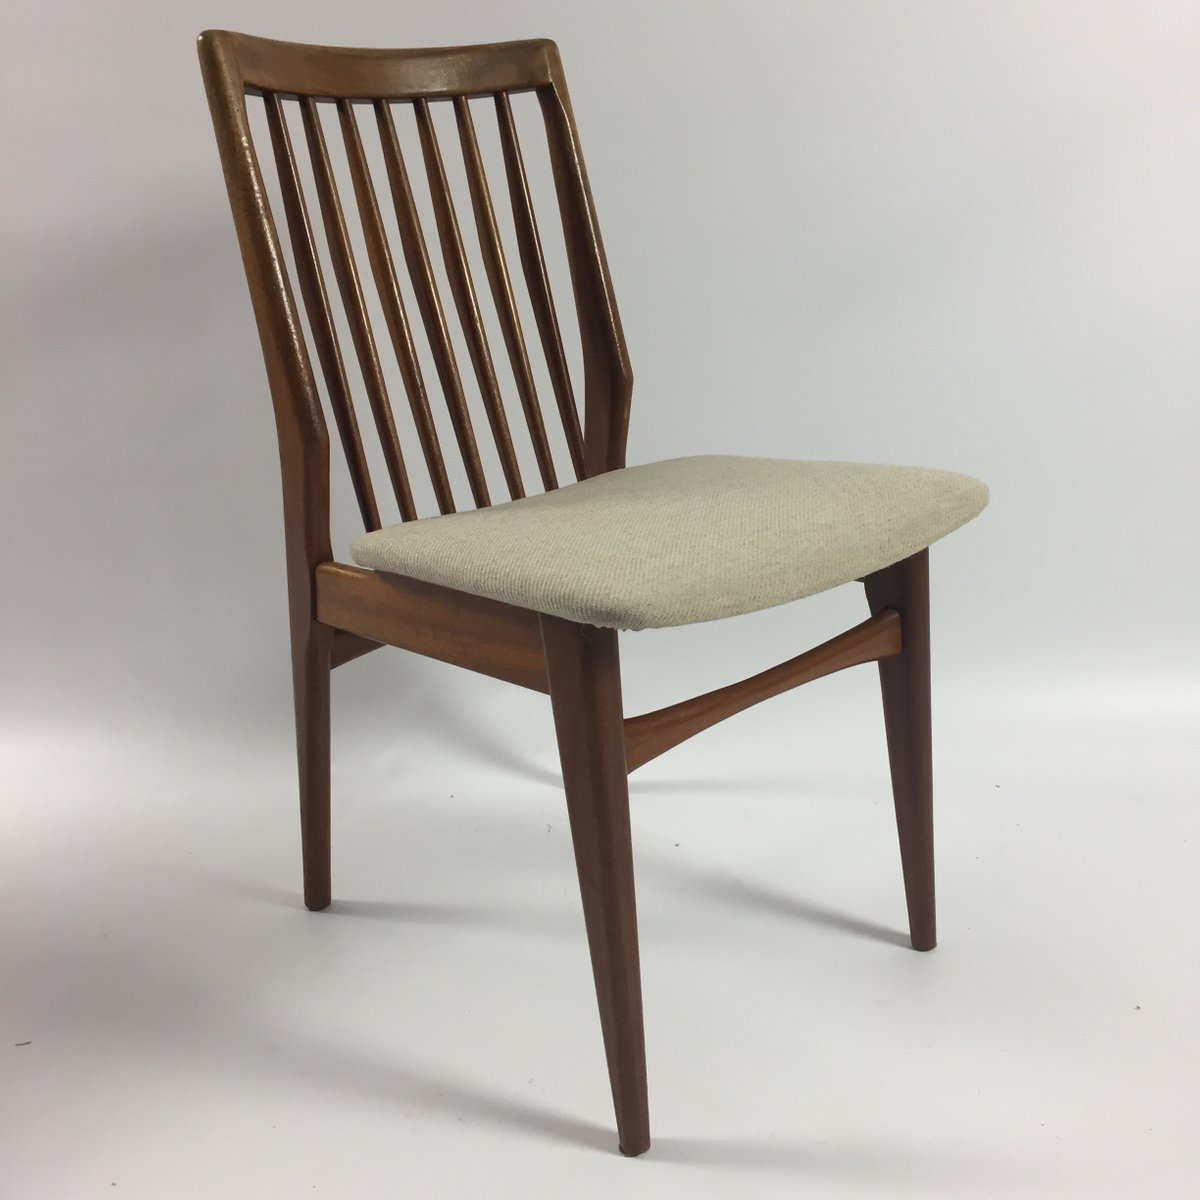 Dutch Walnut Dining Chairs, 1960s, Set of 4 for sale at Pamono